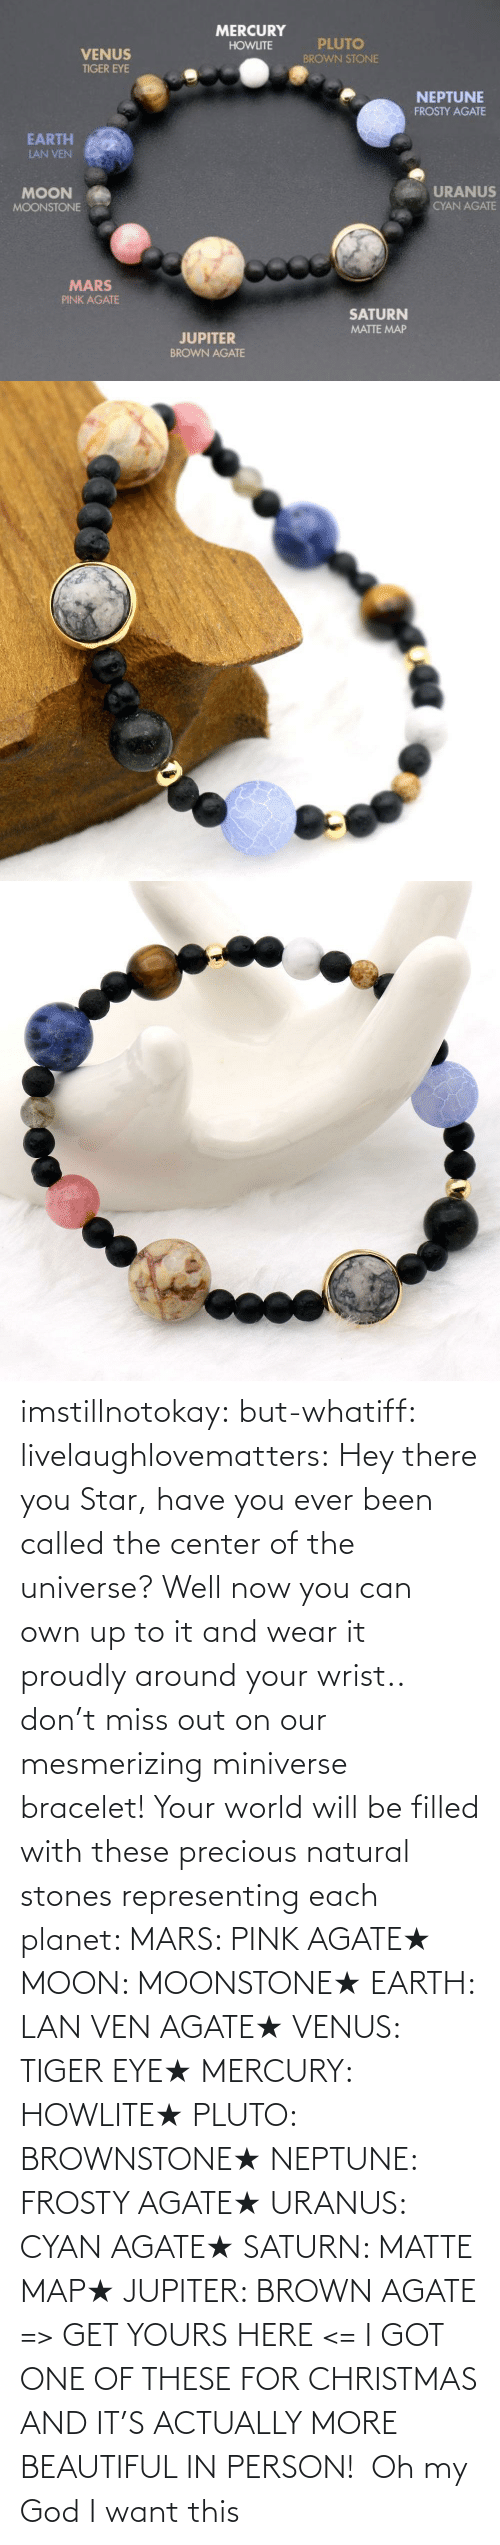 my god: imstillnotokay: but-whatiff:  livelaughlovematters:  Hey there you Star, have you ever been called the center of the universe? Well now you can own up to it and wear it proudly around your wrist.. don't miss out on our mesmerizing miniverse bracelet! Your world will be filled with these precious natural stones representing each planet:  MARS: PINK AGATE★ MOON: MOONSTONE★ EARTH: LAN VEN AGATE★ VENUS: TIGER EYE★ MERCURY: HOWLITE★ PLUTO: BROWNSTONE★ NEPTUNE: FROSTY AGATE★ URANUS: CYAN AGATE★ SATURN: MATTE MAP★ JUPITER: BROWN AGATE => GET YOURS HERE <=  I GOT ONE OF THESE FOR CHRISTMAS AND IT'S ACTUALLY MORE BEAUTIFUL IN PERSON!     Oh my God I want this